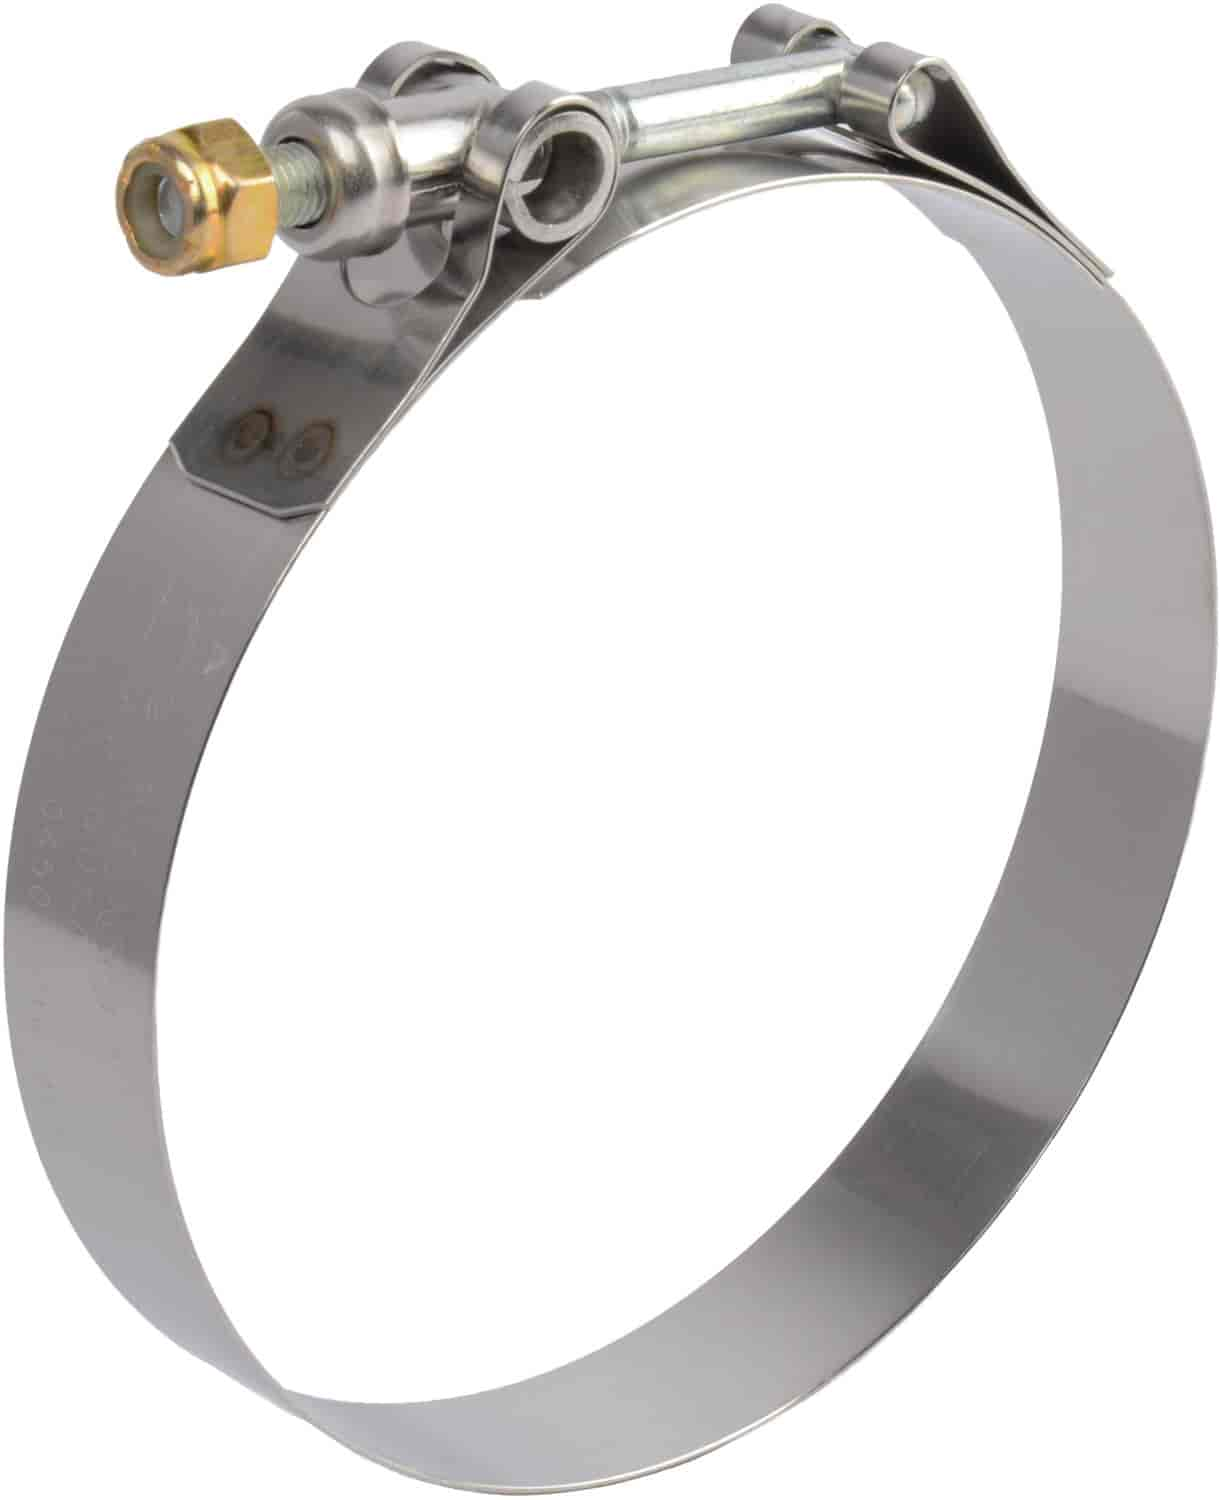 Vibrant 2798 Stainless Steel T-Bolt Clamp